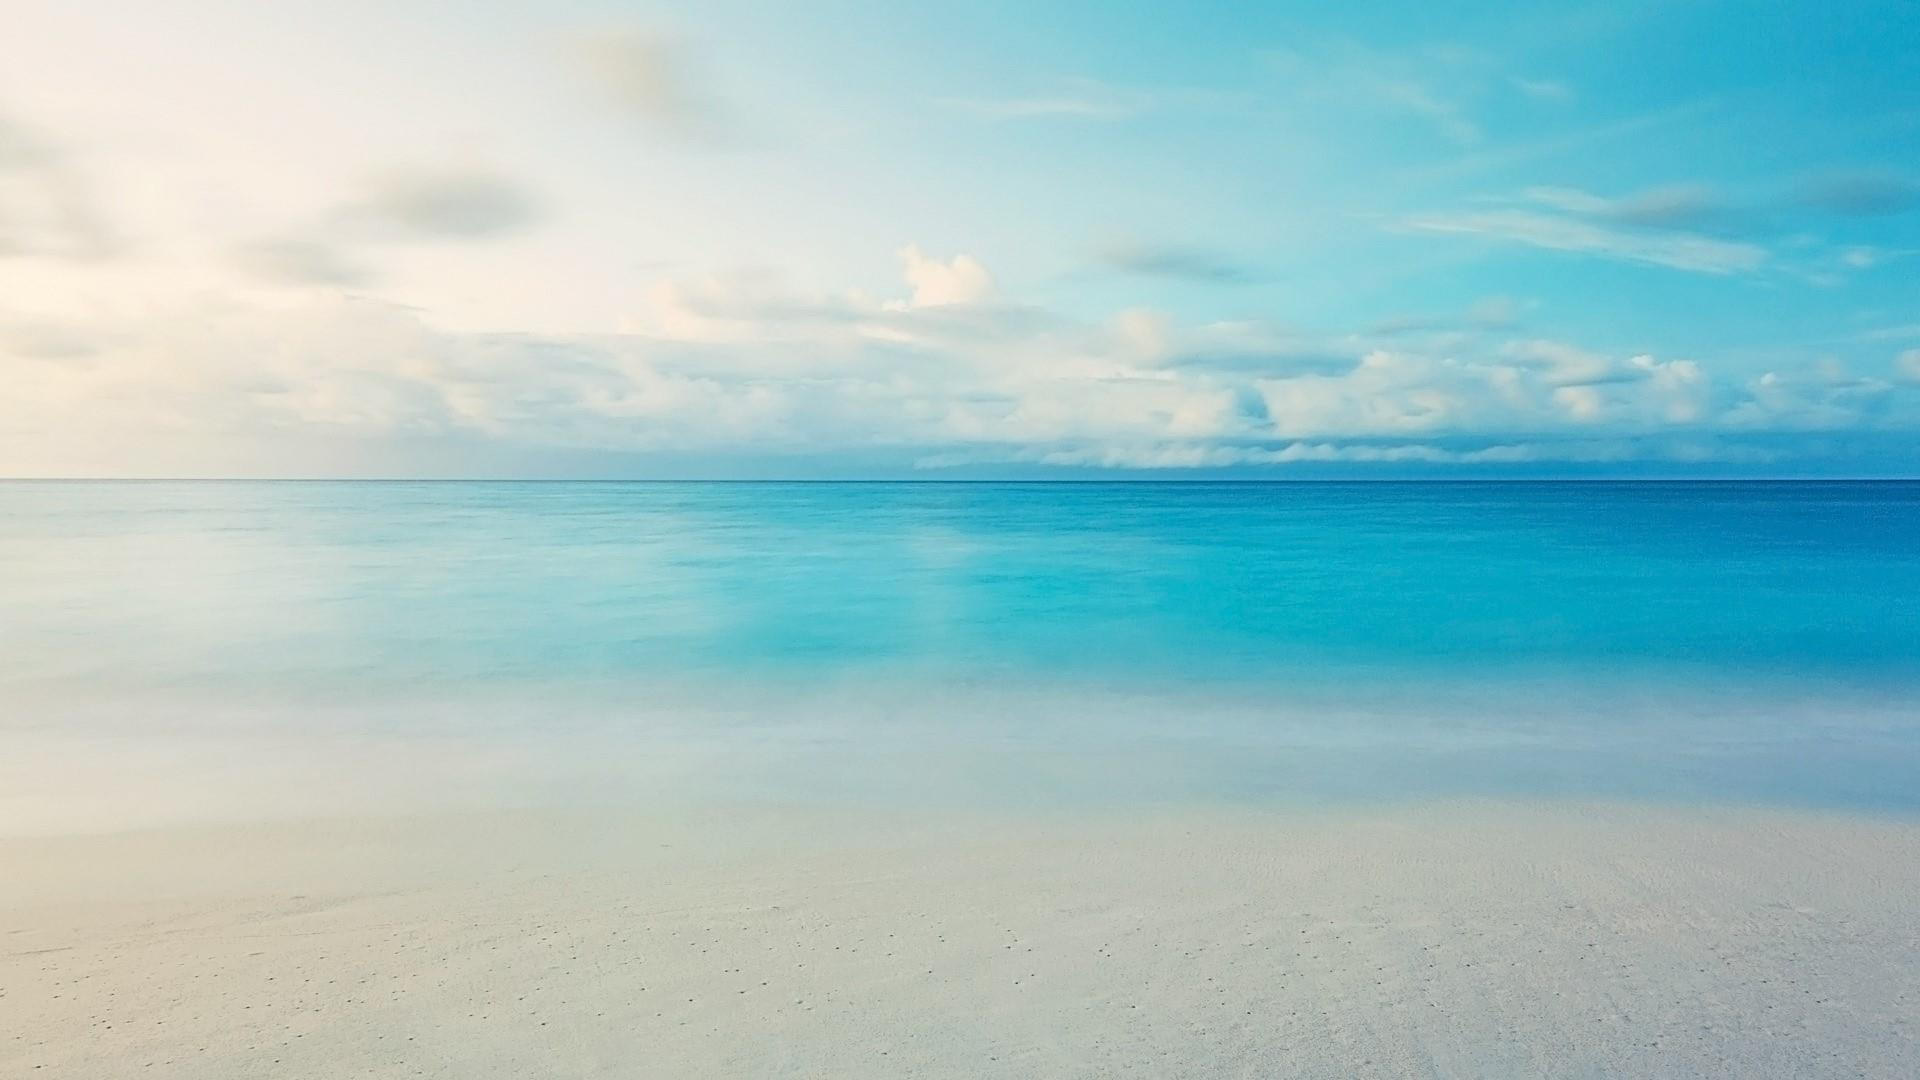 Blue ocean horizon wallpaper